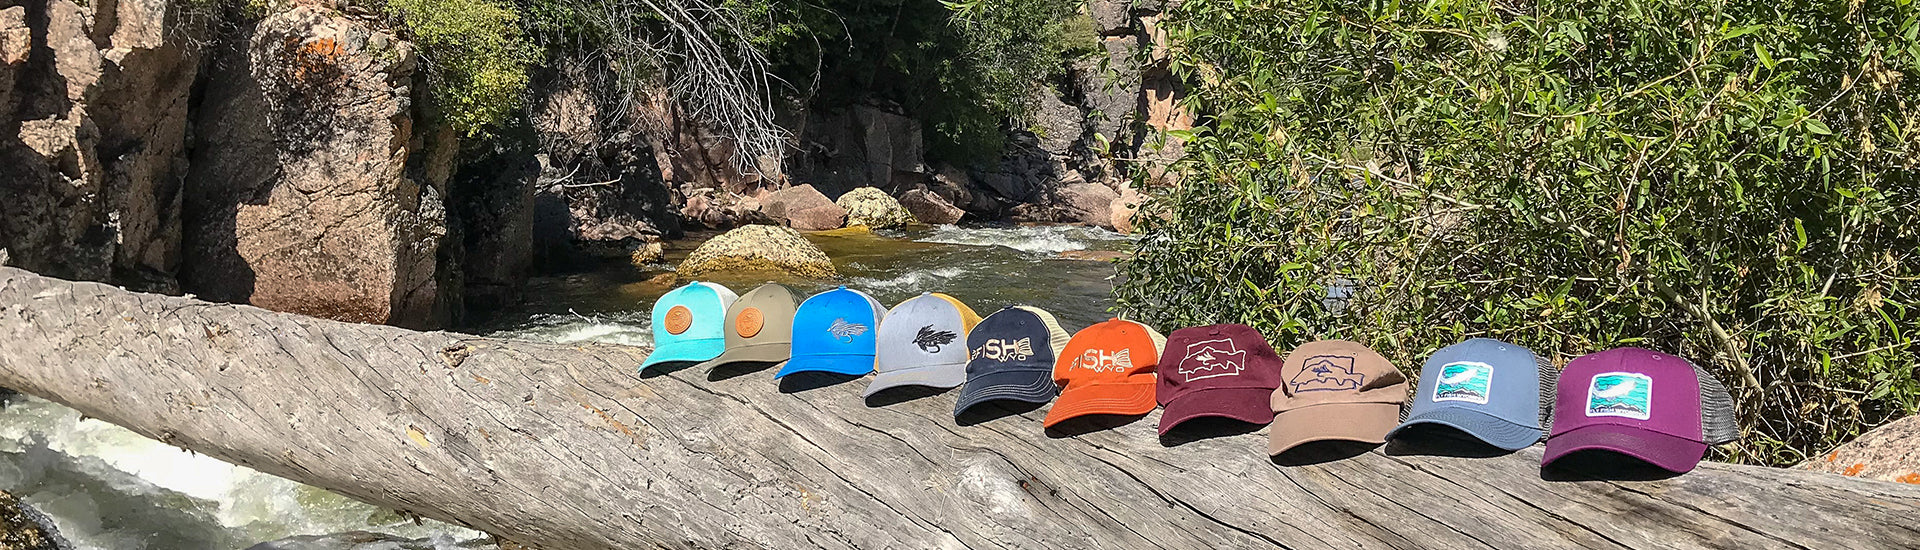 fly fish wyoming hat collection